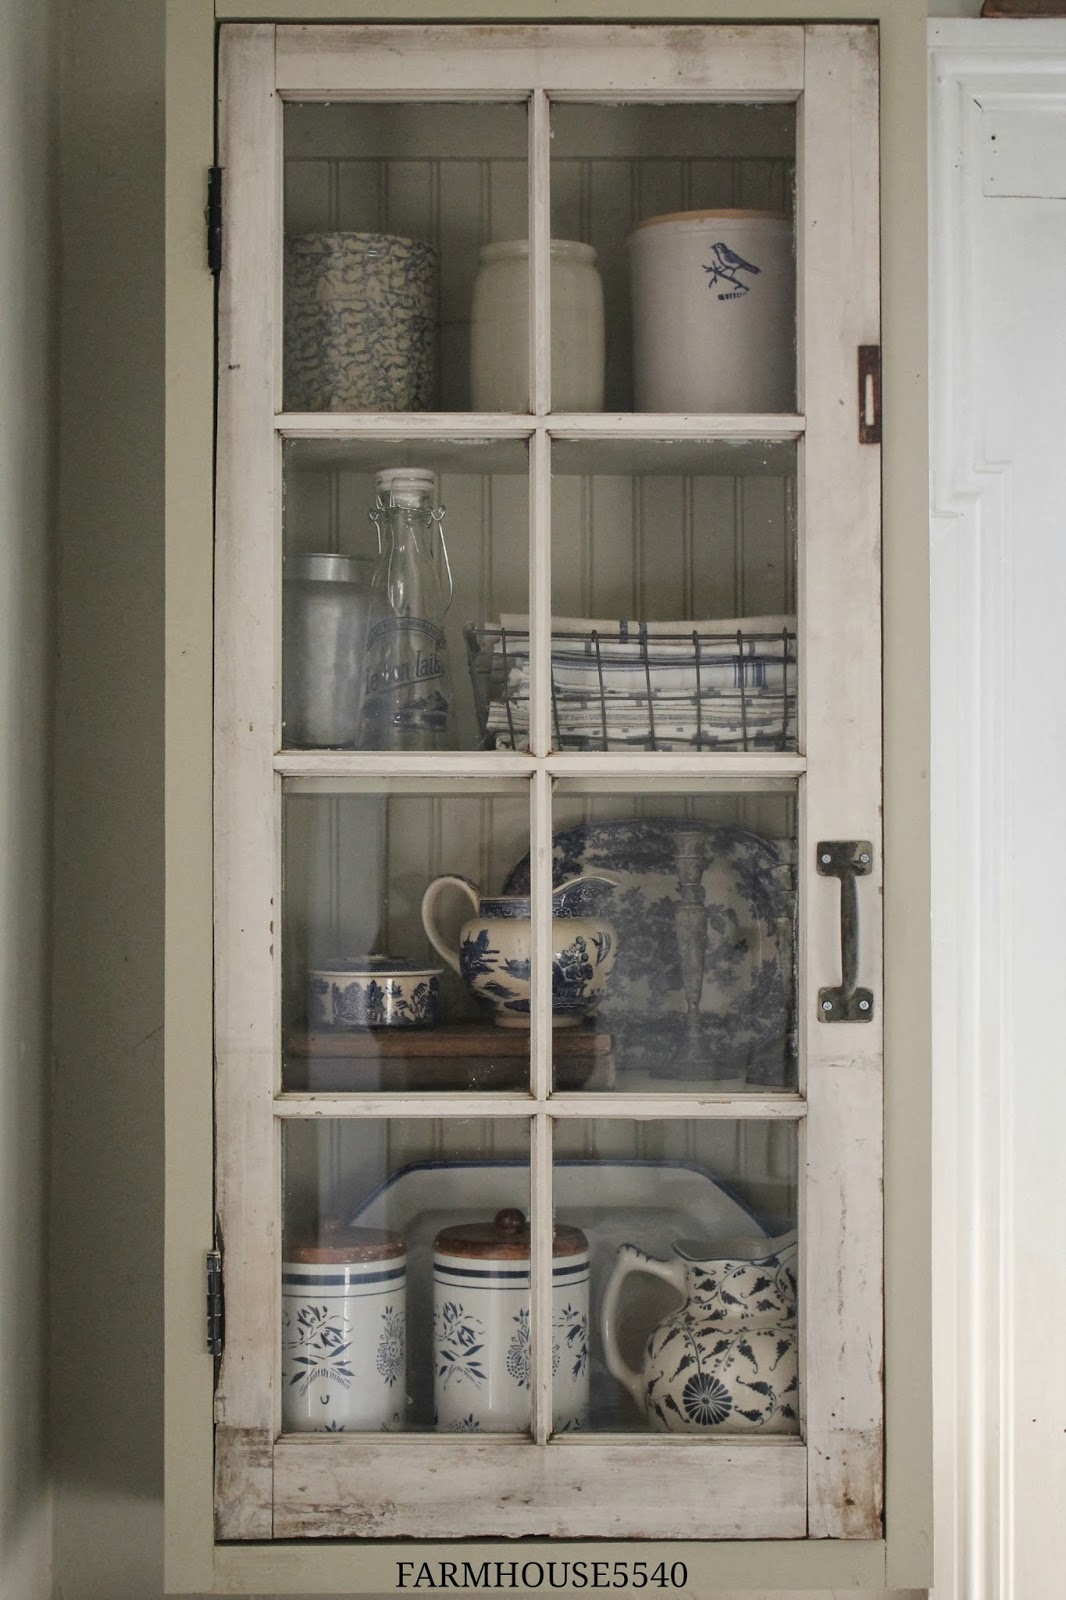 FARMHOUSE 5540 A New Cupboard With An Old Window